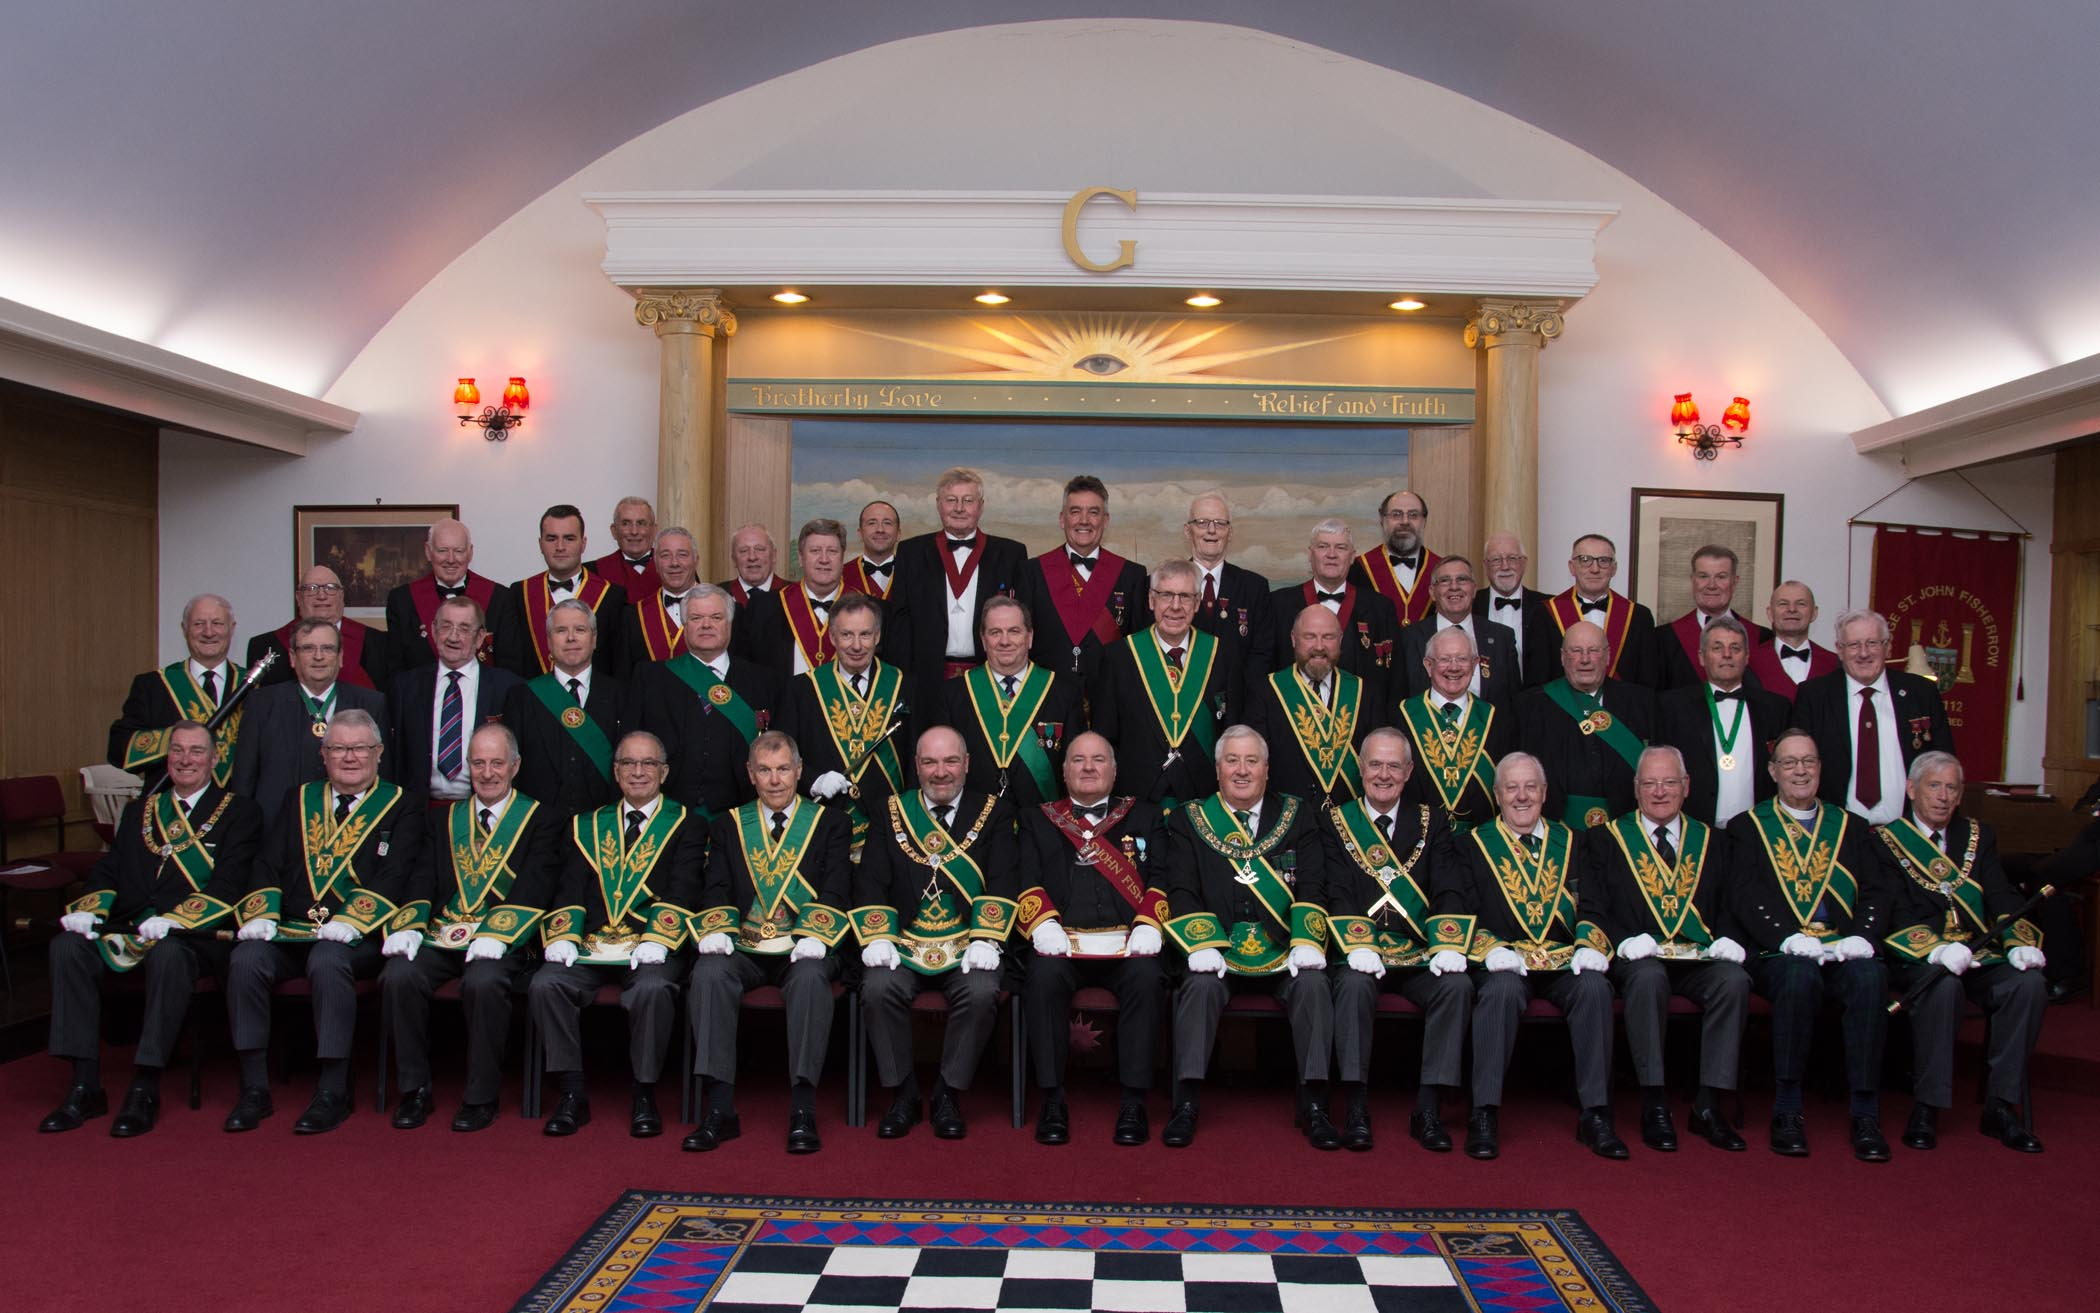 Brother John Thorburn, the right worshipful master of the Lodge St John Fisherrow, and other office bearers are joined by guests from the Grand Lodge of Scotland and Provincial Grand Lodge of Midlothian at the 250th anniversary rededication ceremony